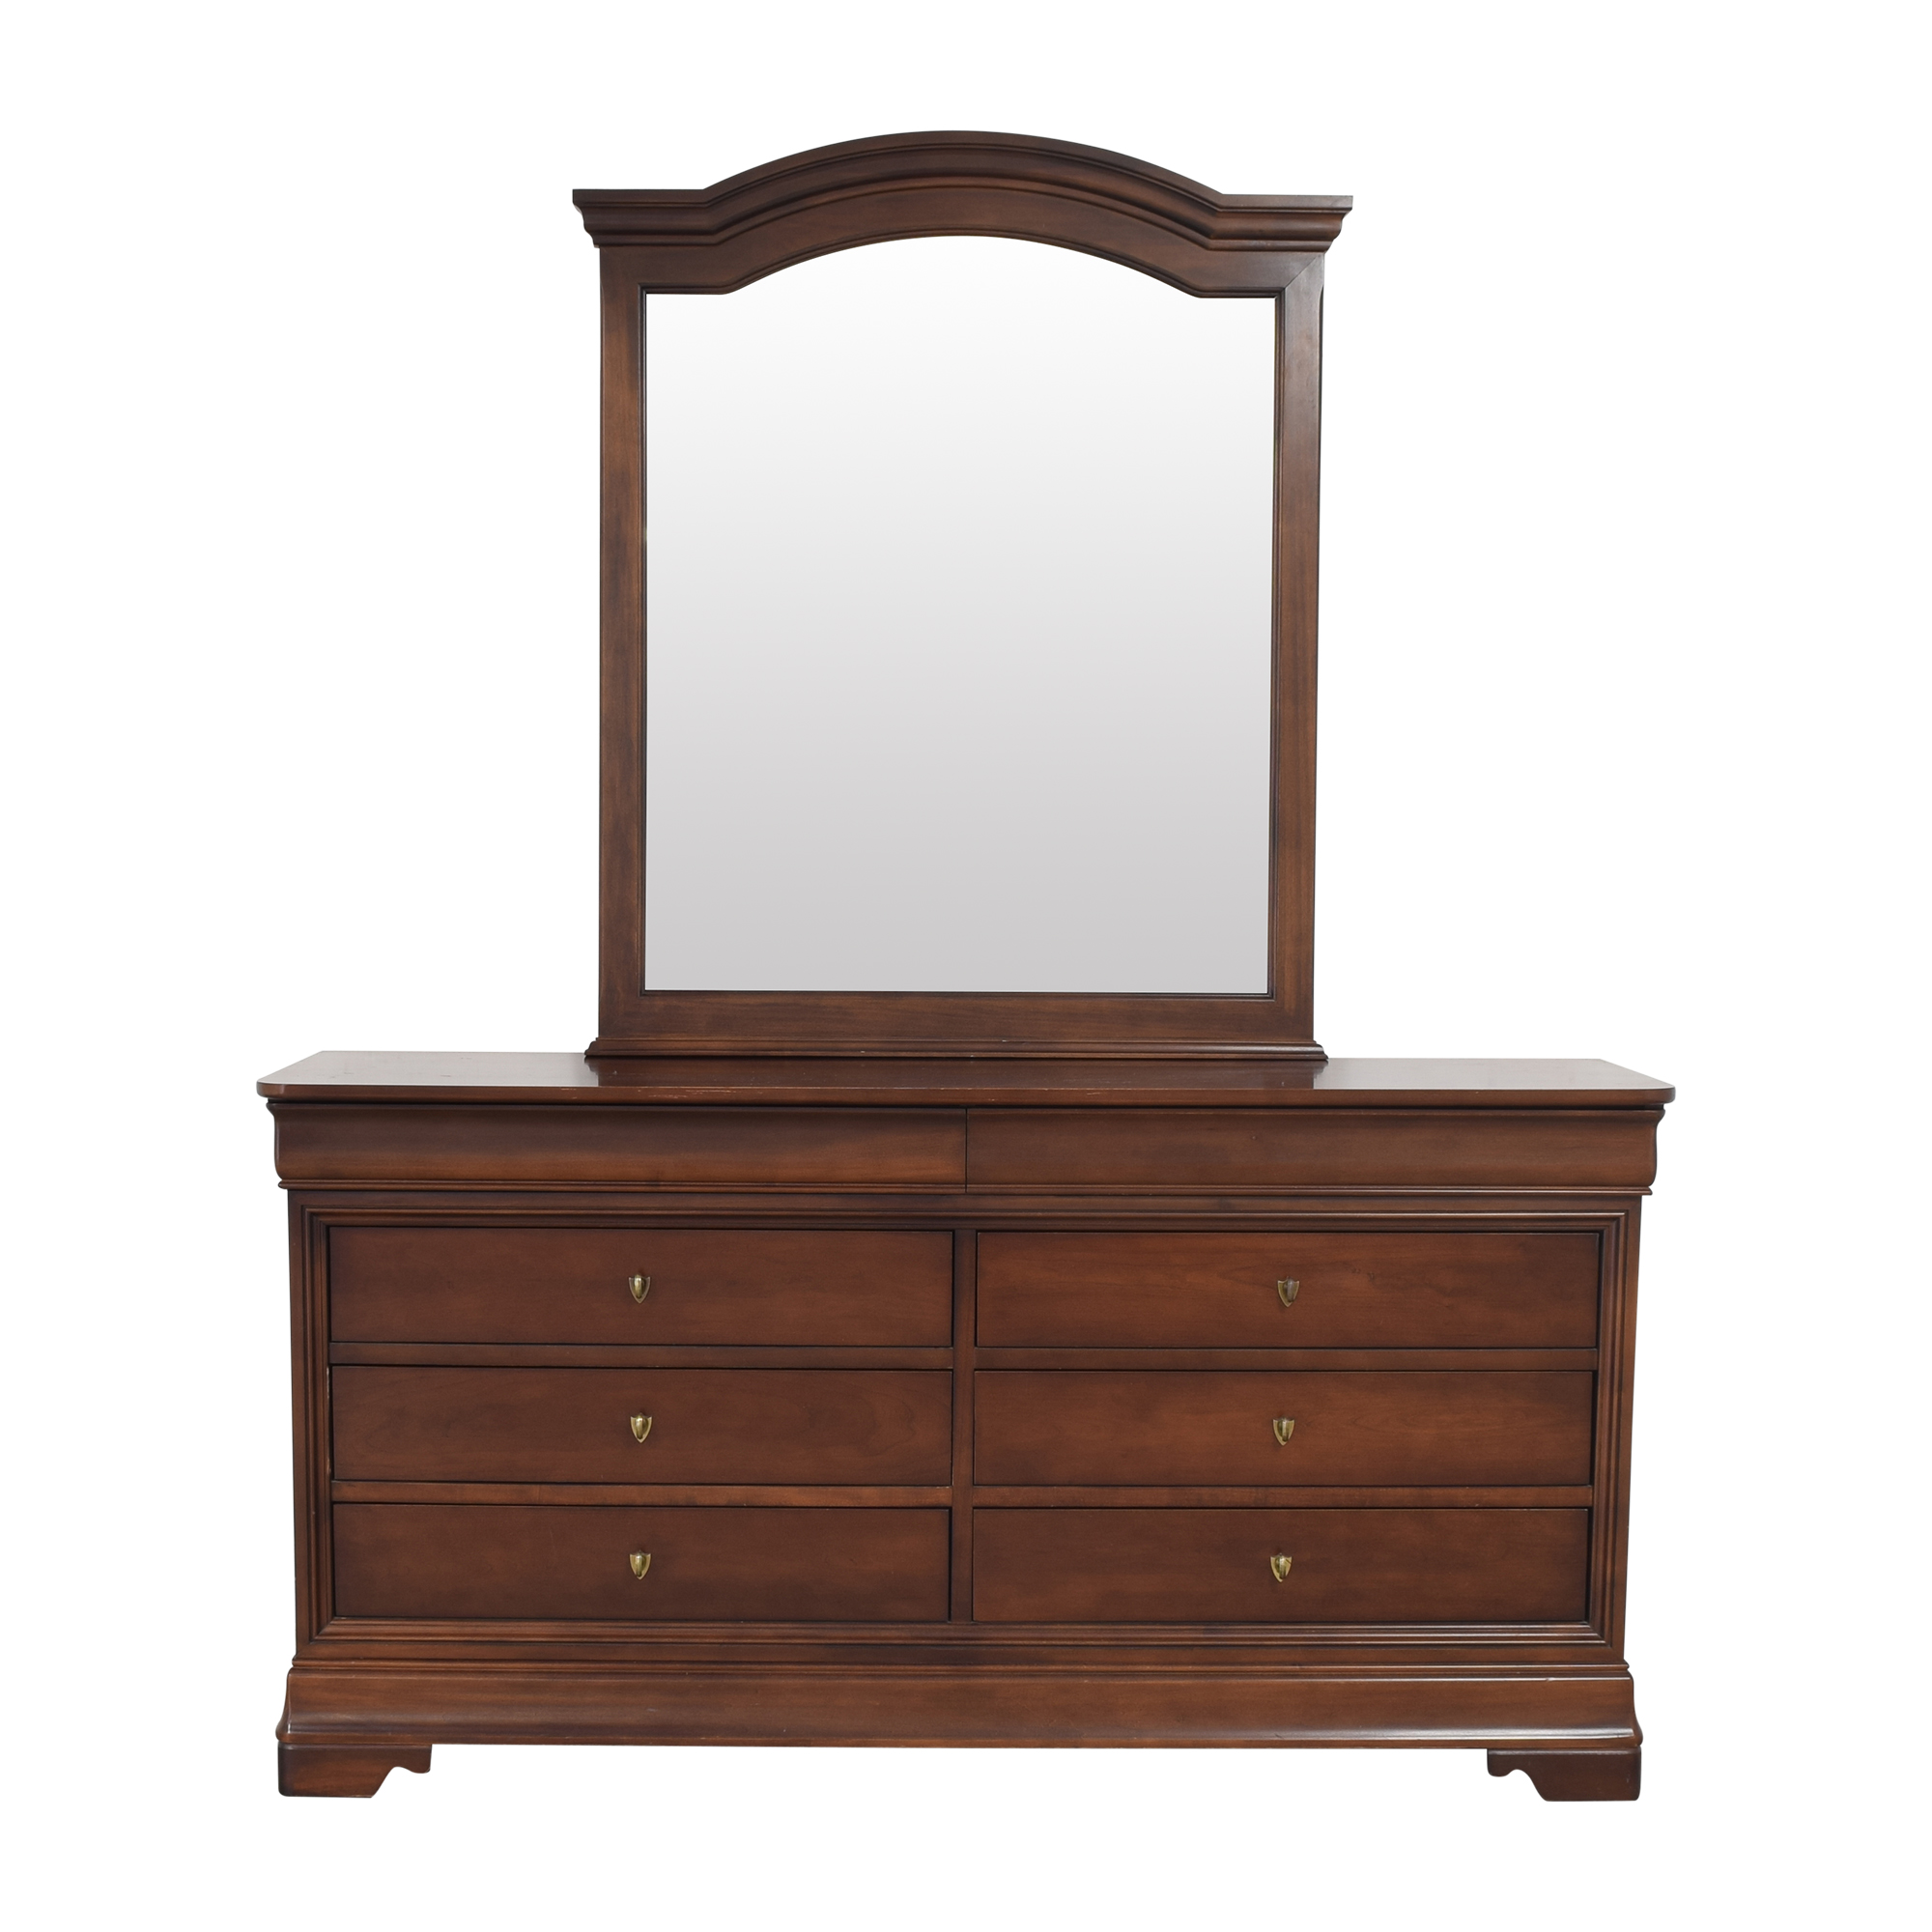 Kimball Kimball Double Dresser with Mirror second hand